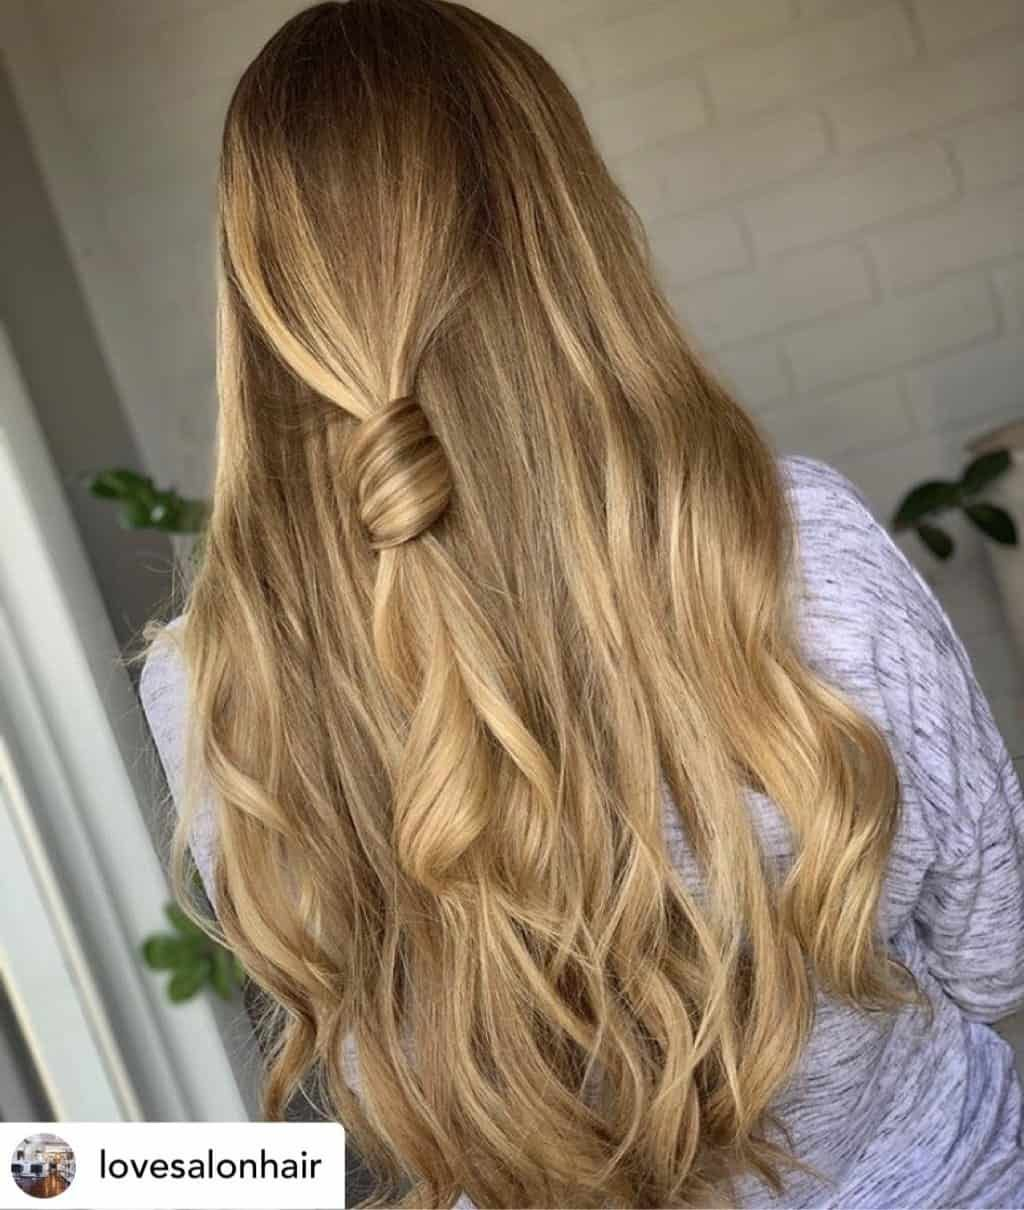 14 Brilliant Rainy Day Hairstyles That Will Help You Survive Spring In 2020 Rainy Day Hairstyles Vintage Hairstyles For Long Hair Hair Styles